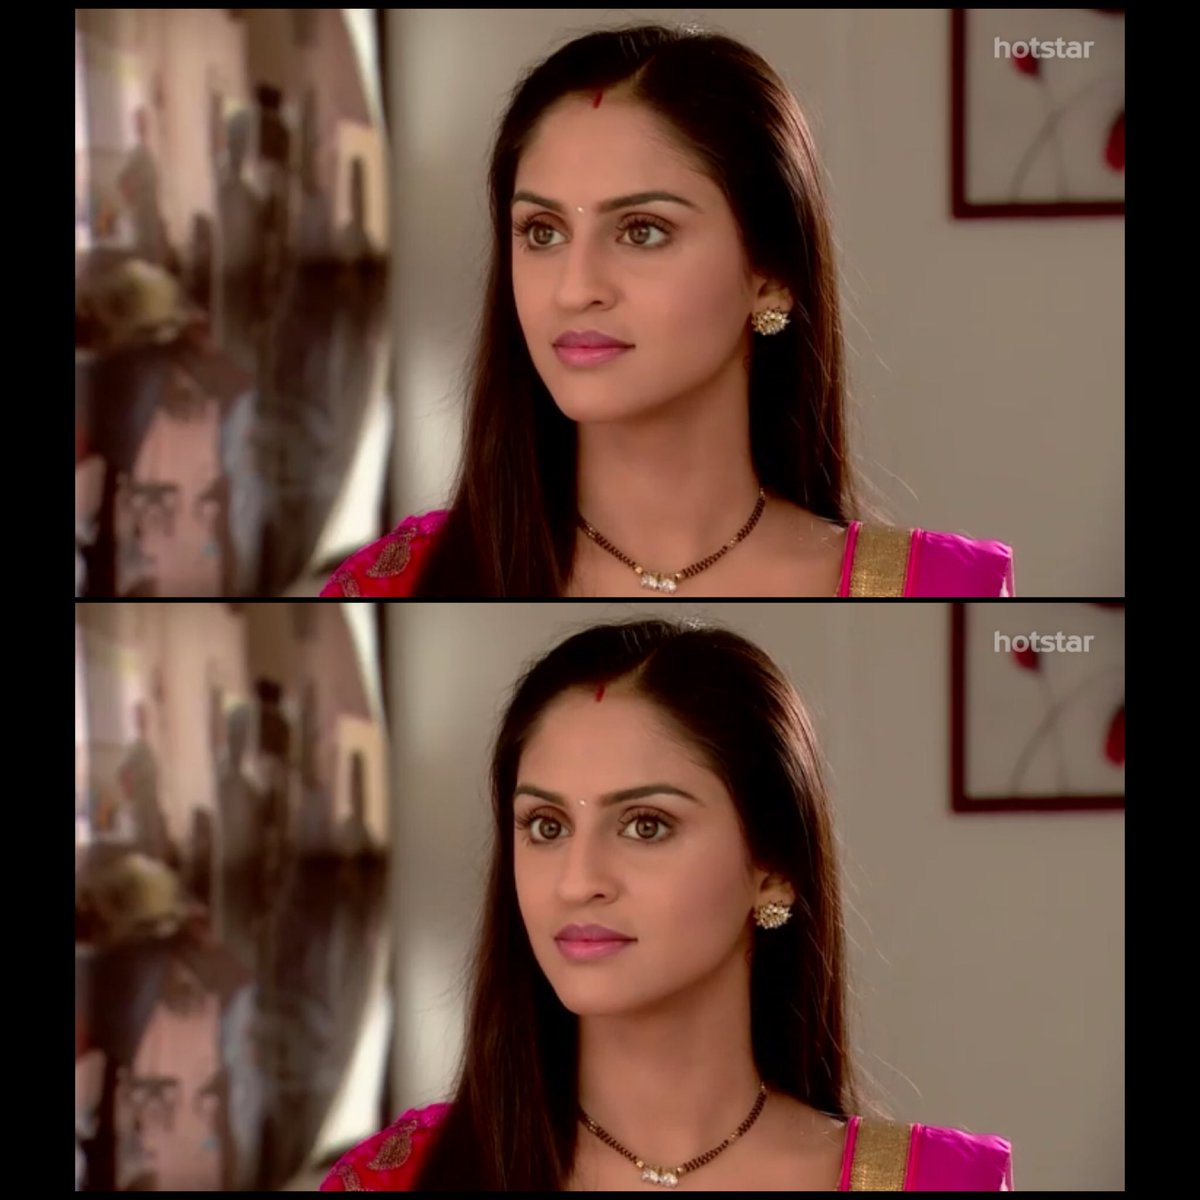 jeevika hashtag on Twitter